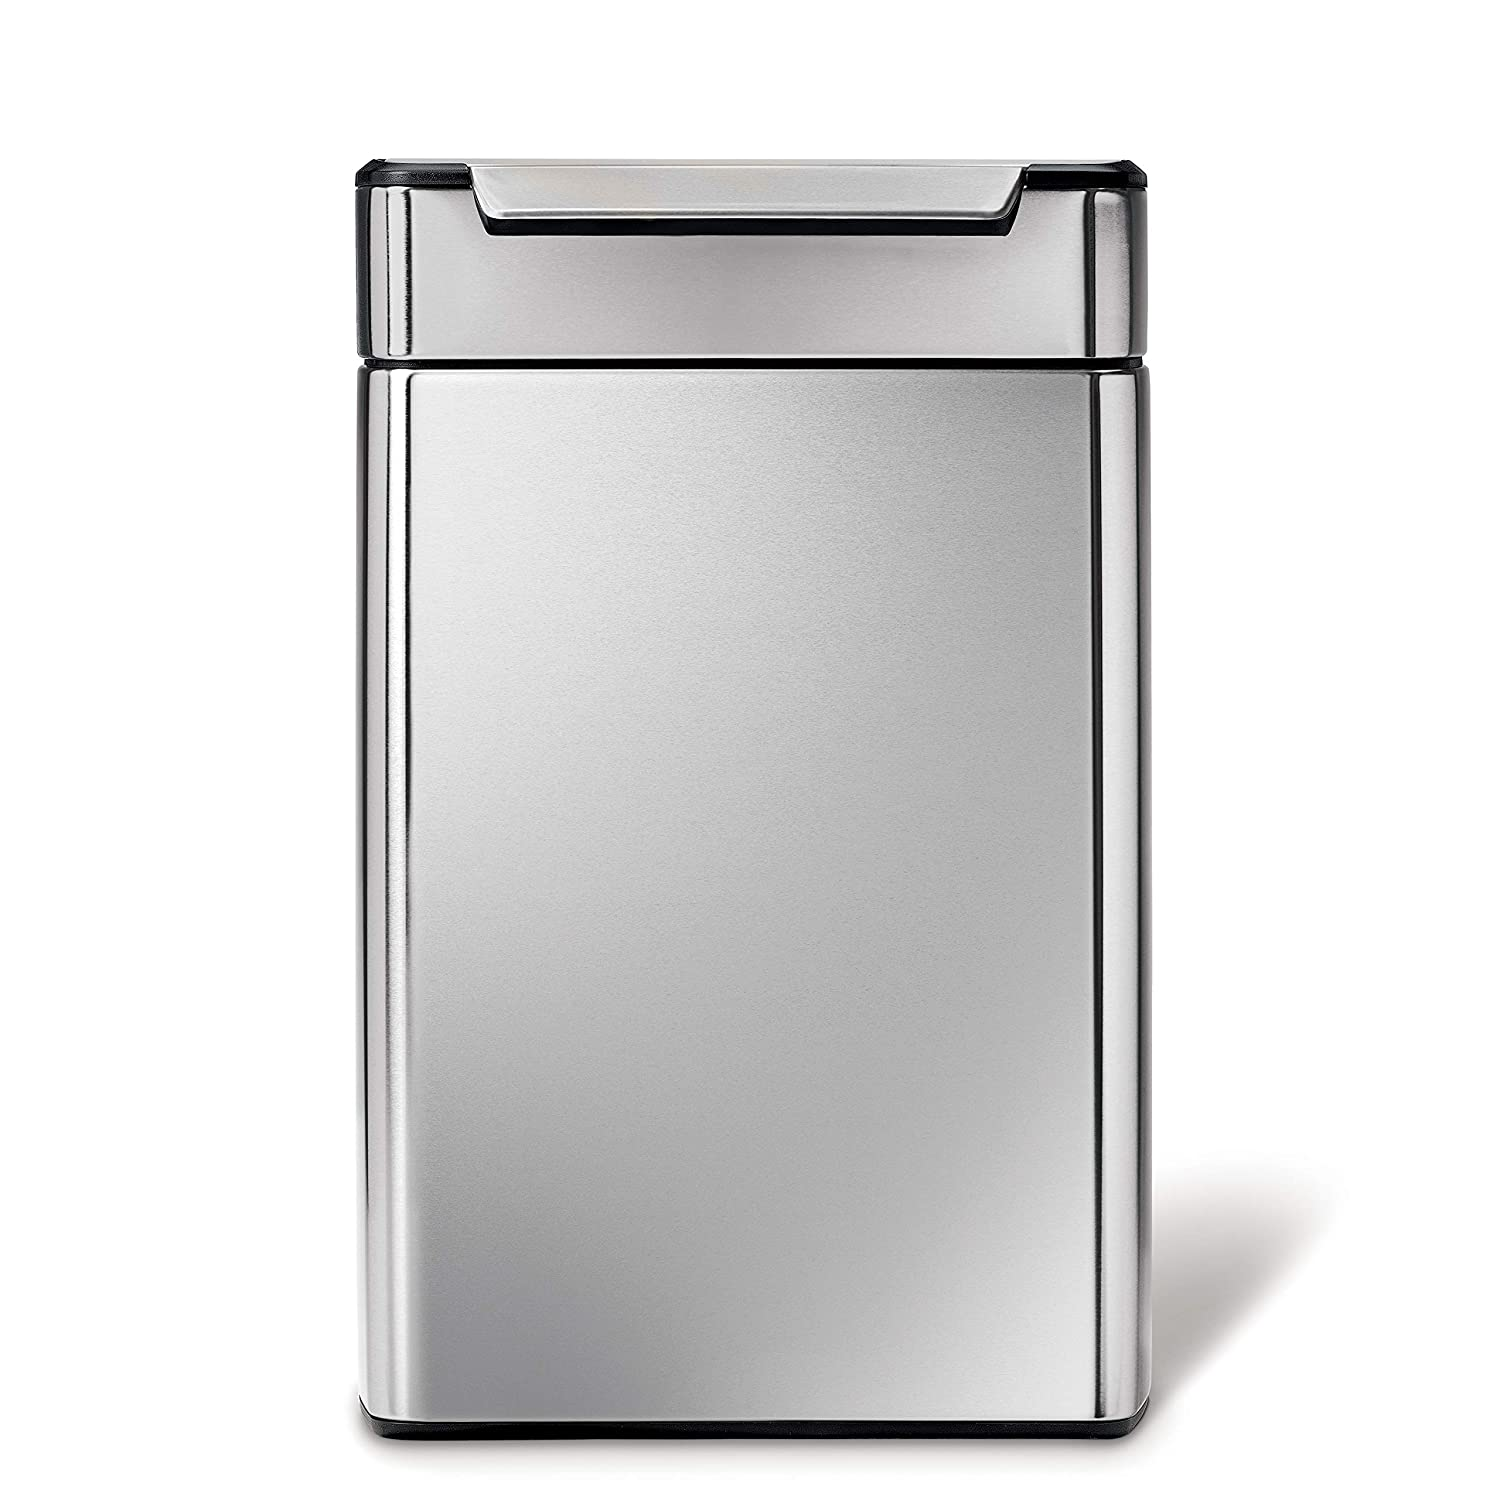 29/x 40/cm 1/Unit simplehuman CW2018/Touch Bar Recycling Kitchen Bin Stainless Steel